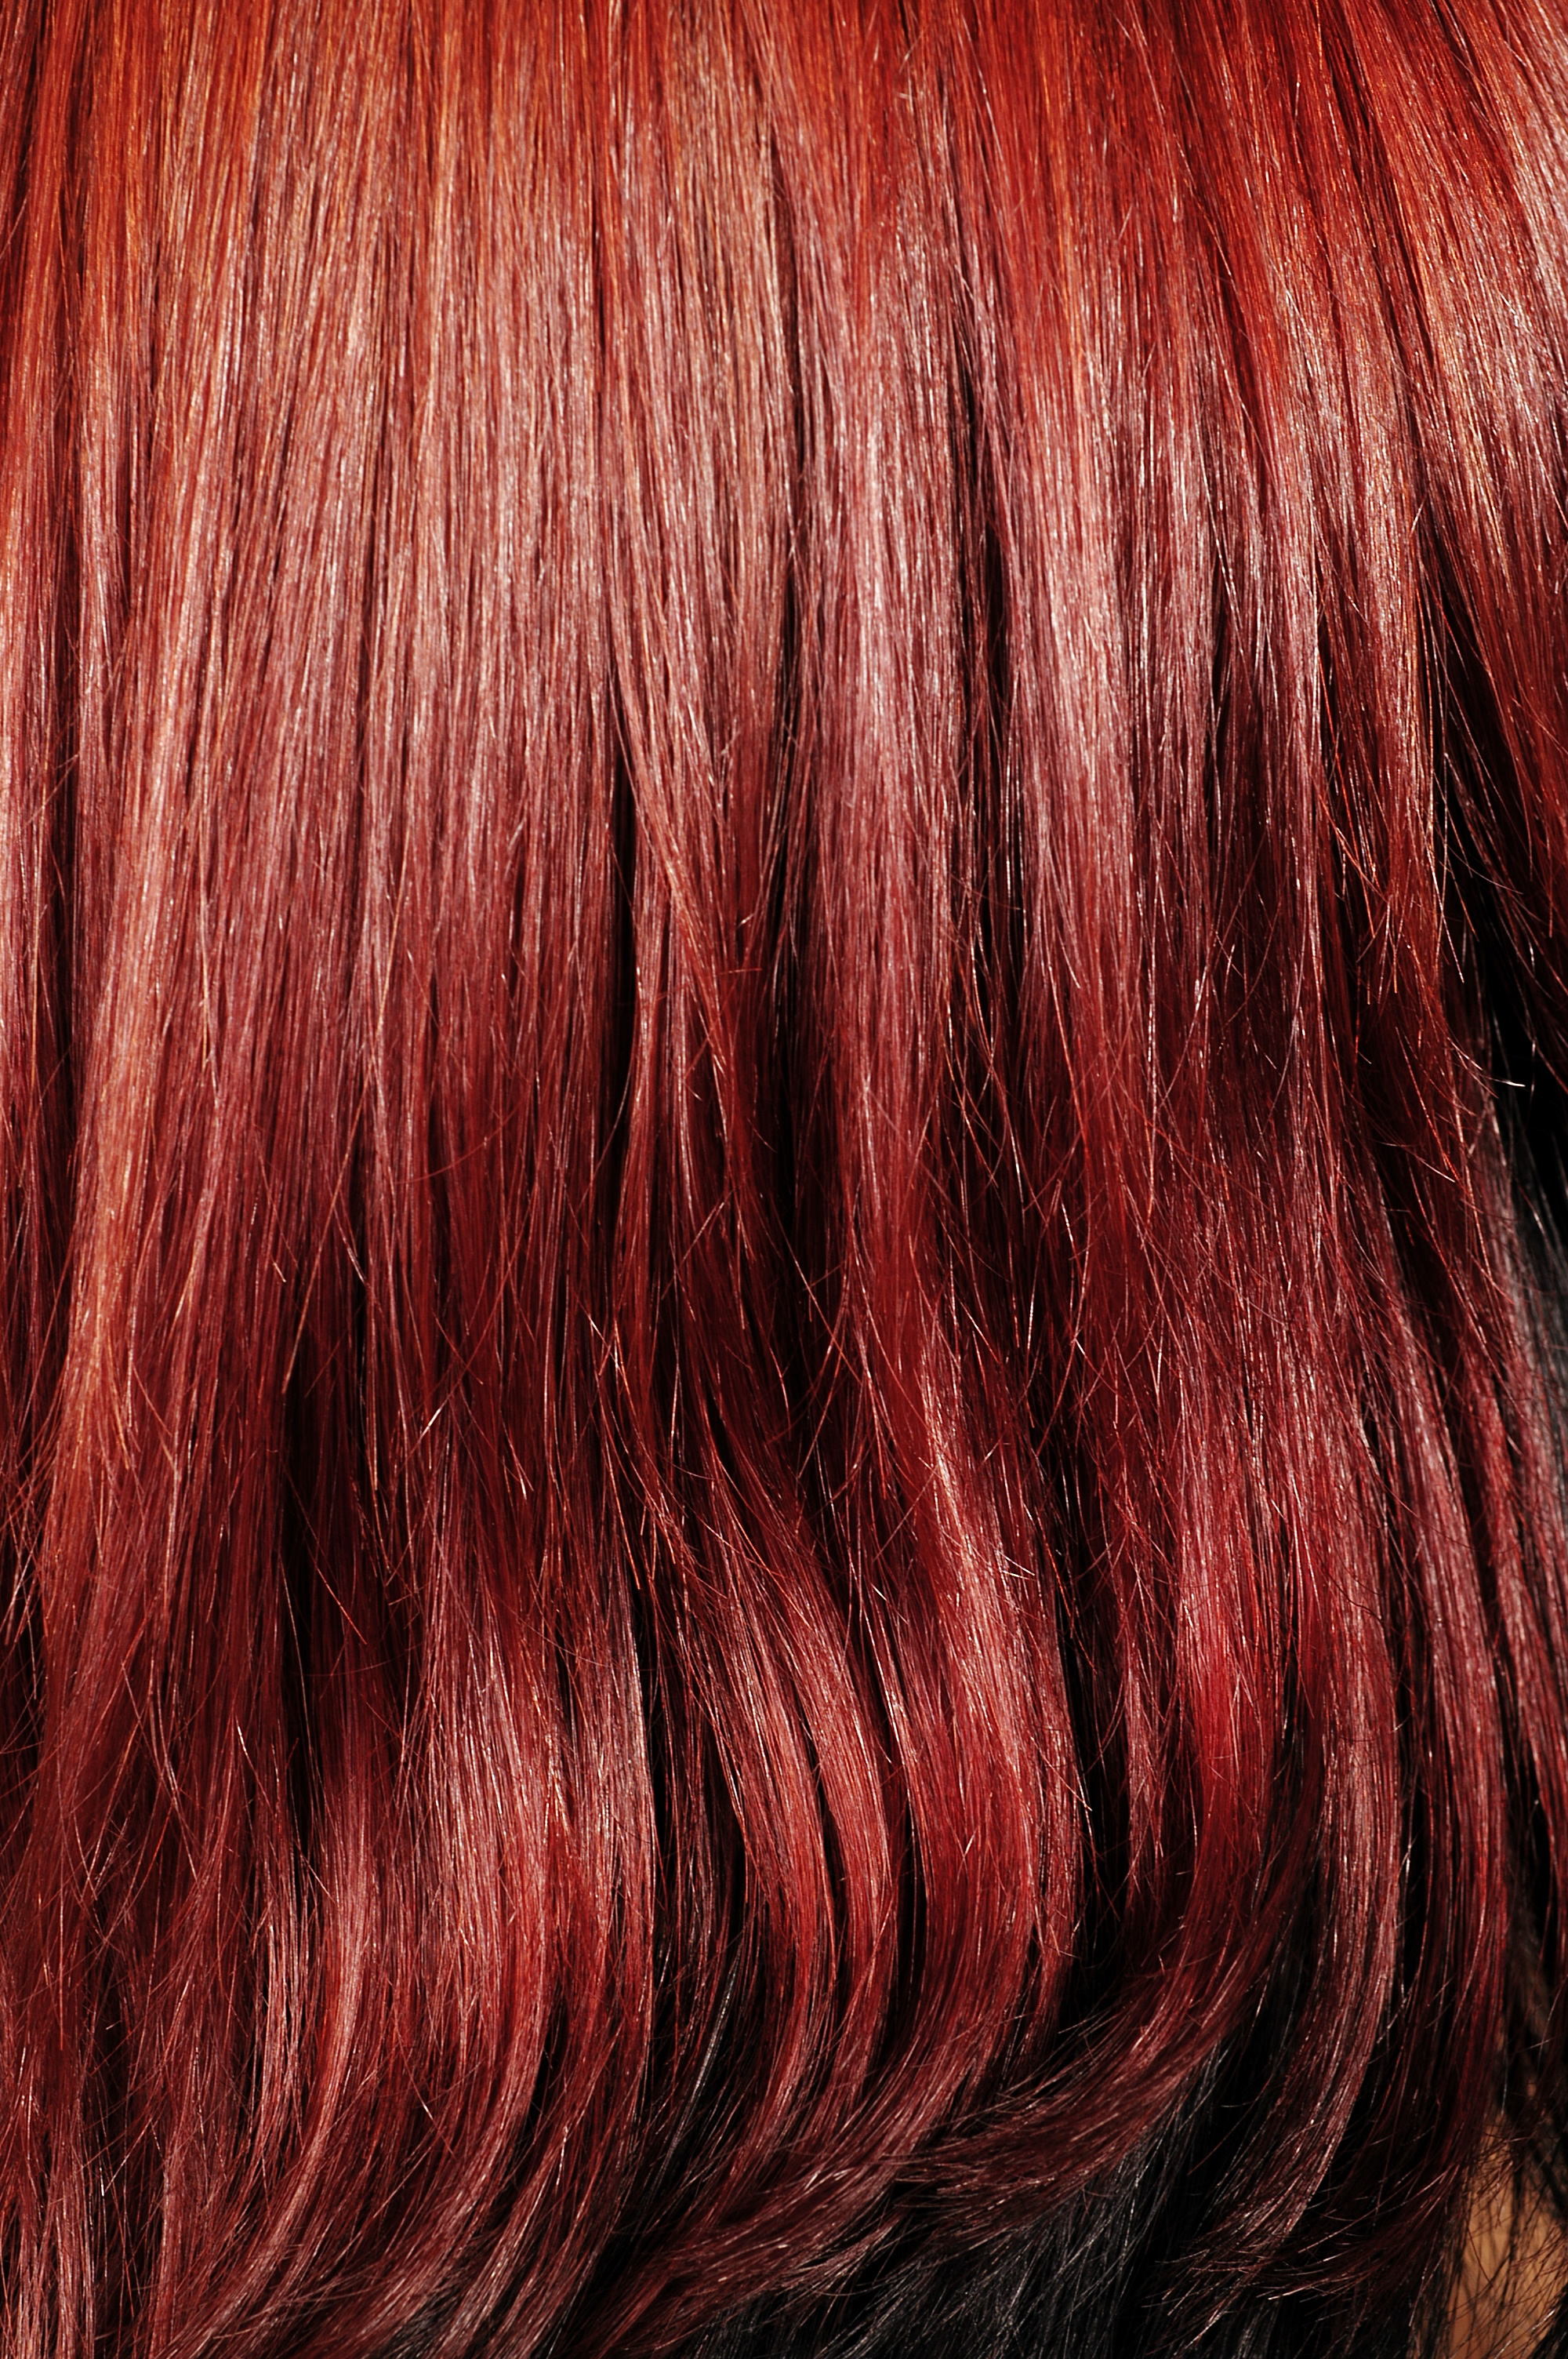 red texture, background, red hair texture, background